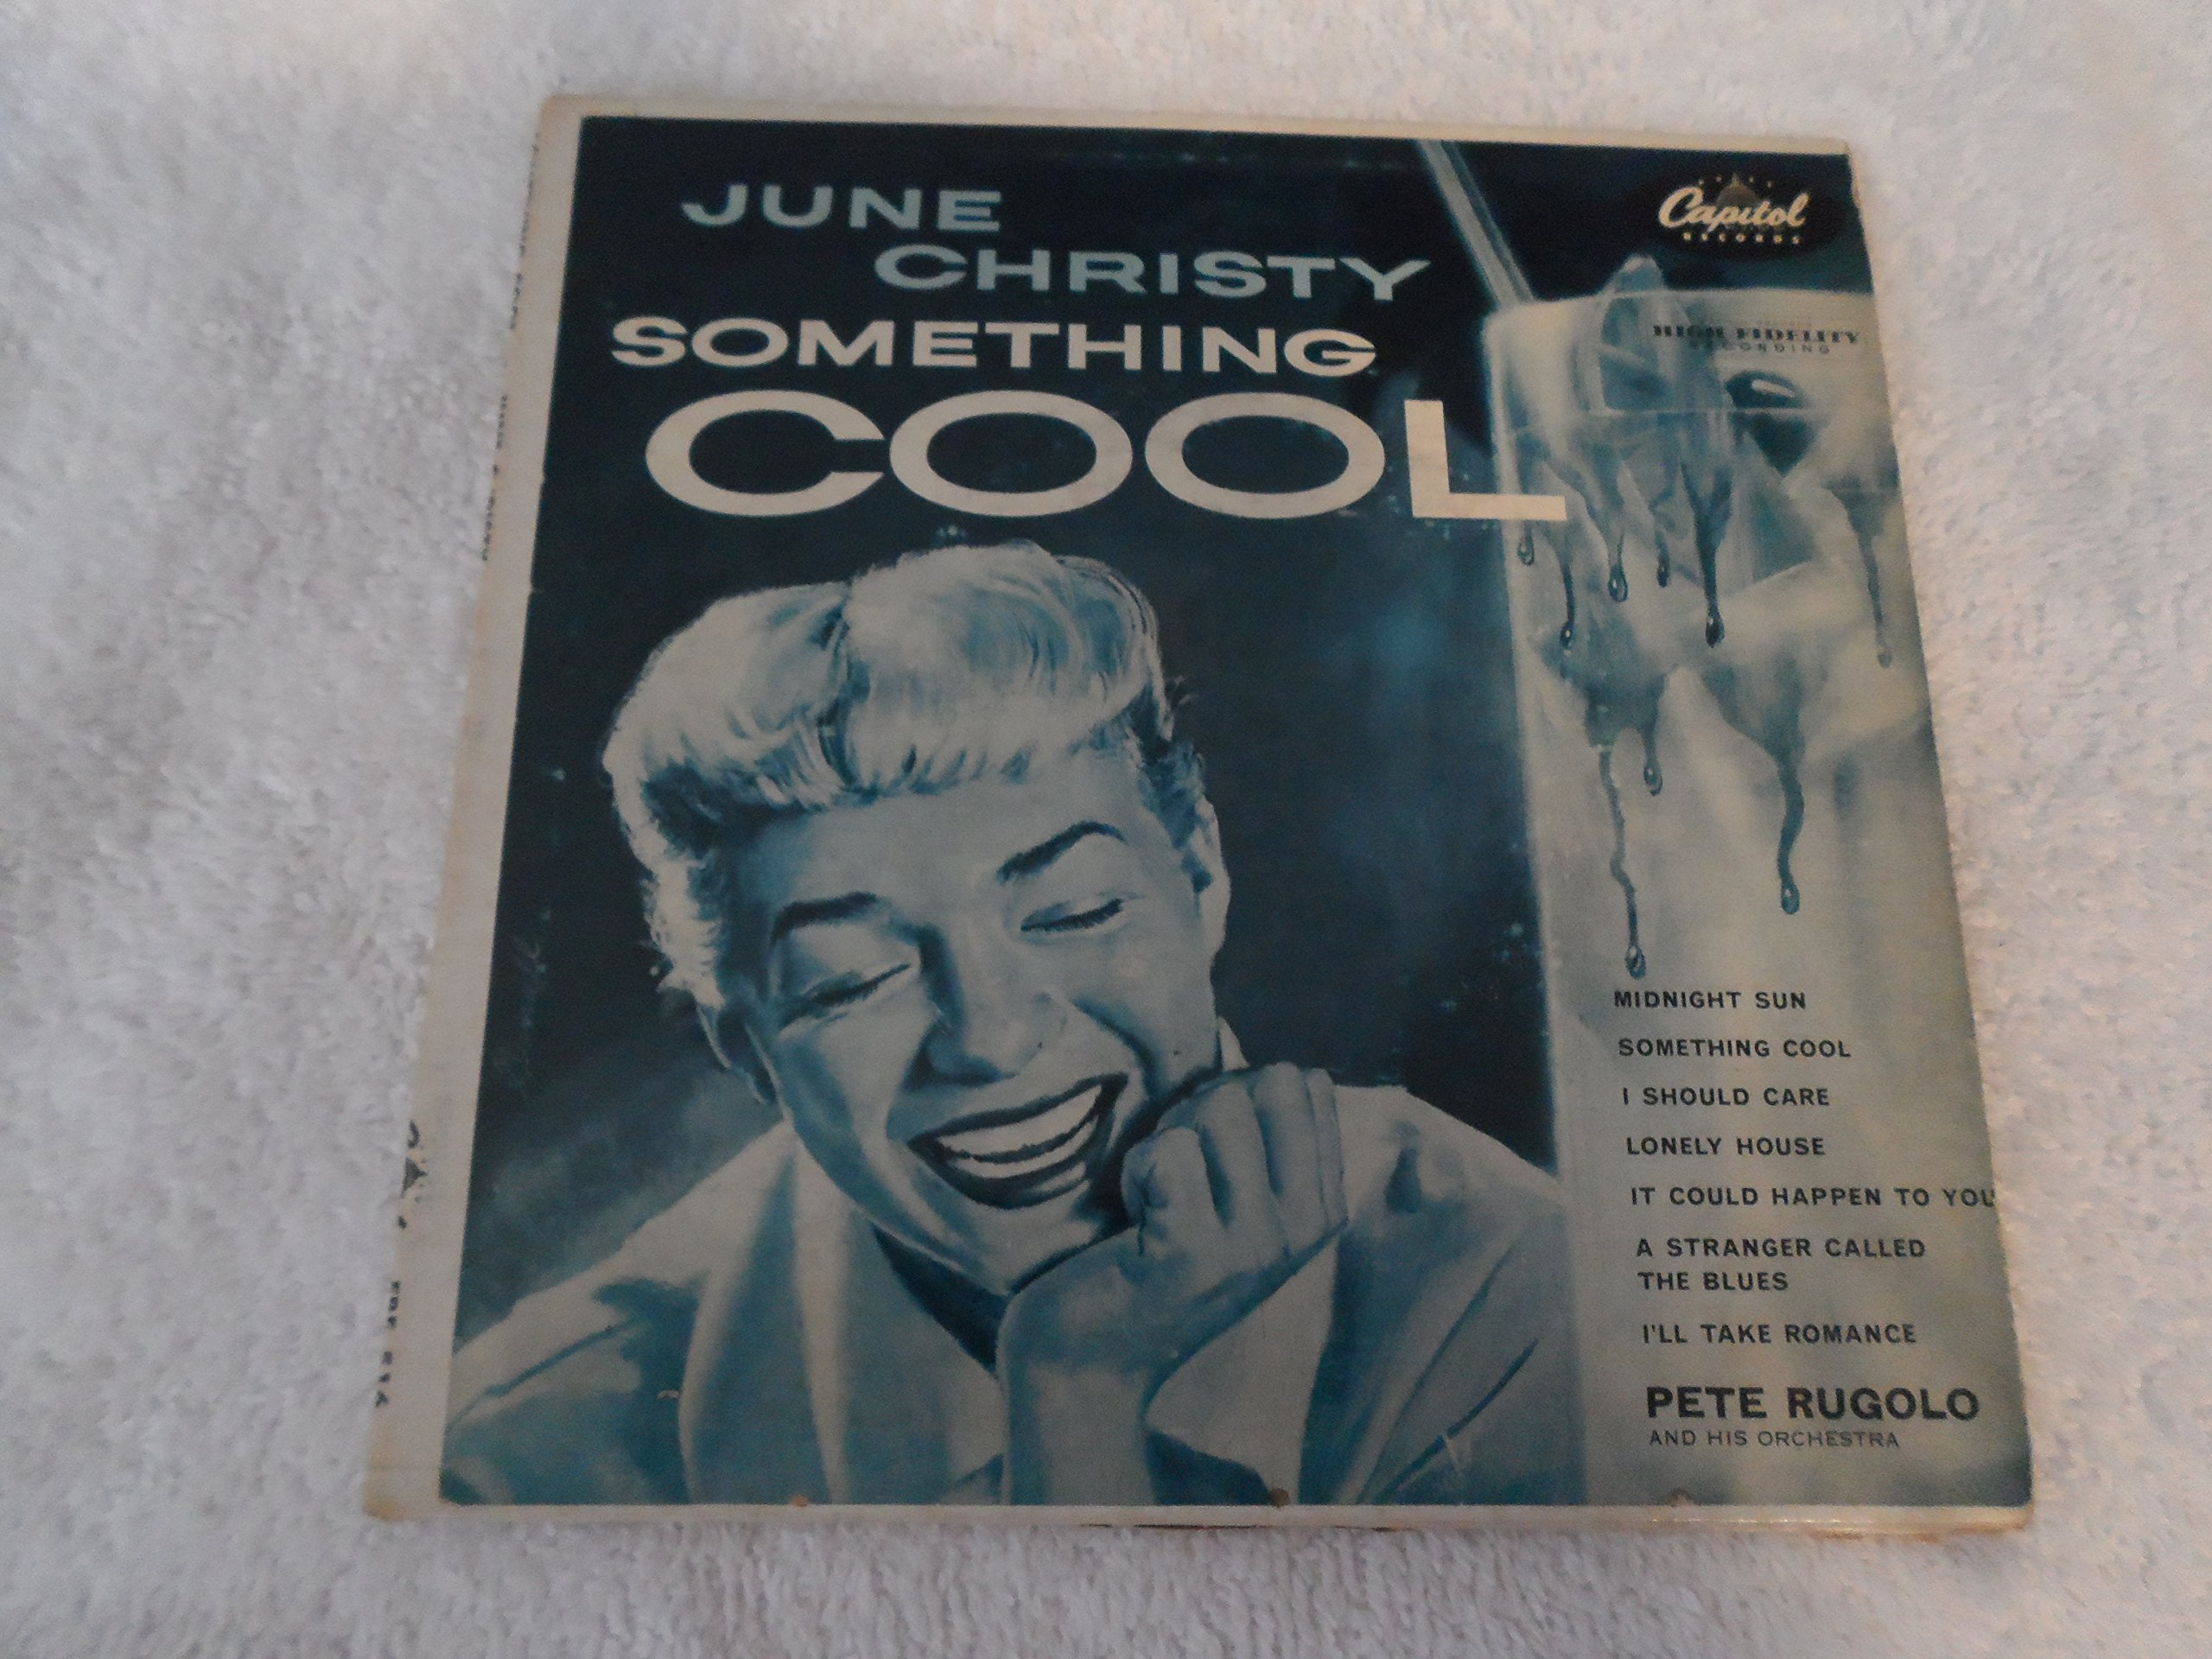 June Christy: Something Cool (Original 1954 High Fidelity Recording -- NOT 1960 Stereo Rerecording) (1955 Capitol 12'' Turquoise Label Issue With Original Cover Art) [VINYL LP] [MONO]